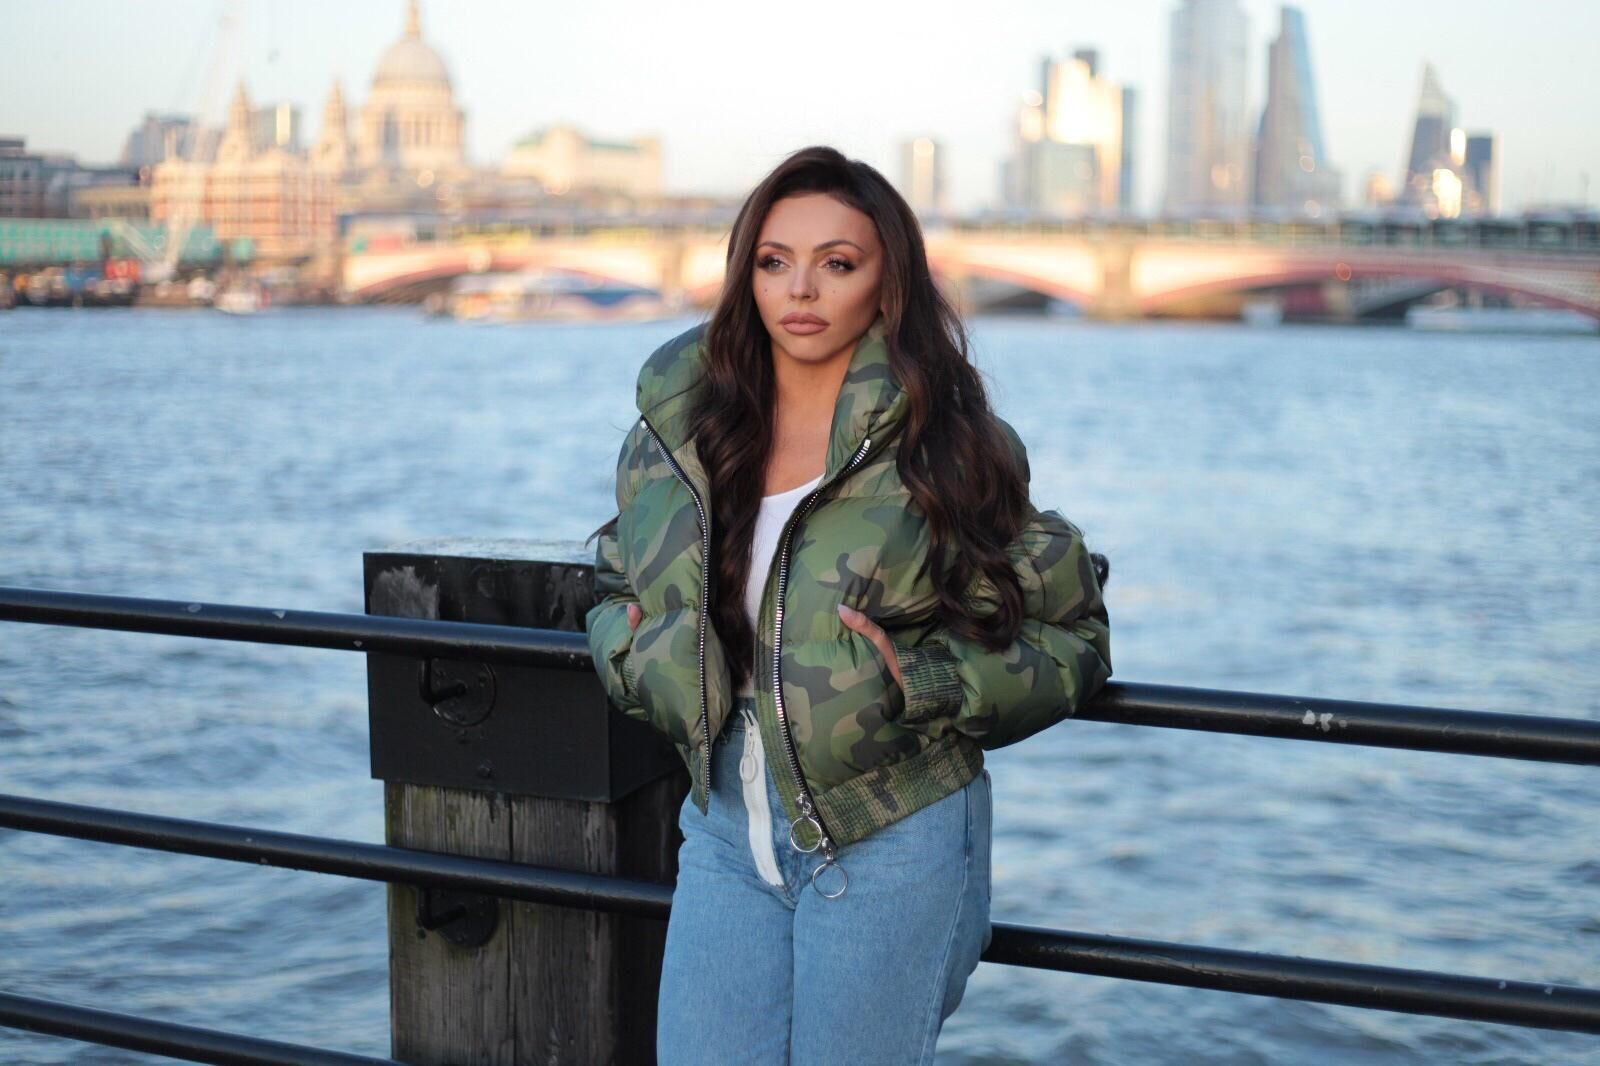 Little Mix's Jesy Nelson explores mental health and body image battles in new BBC documentary